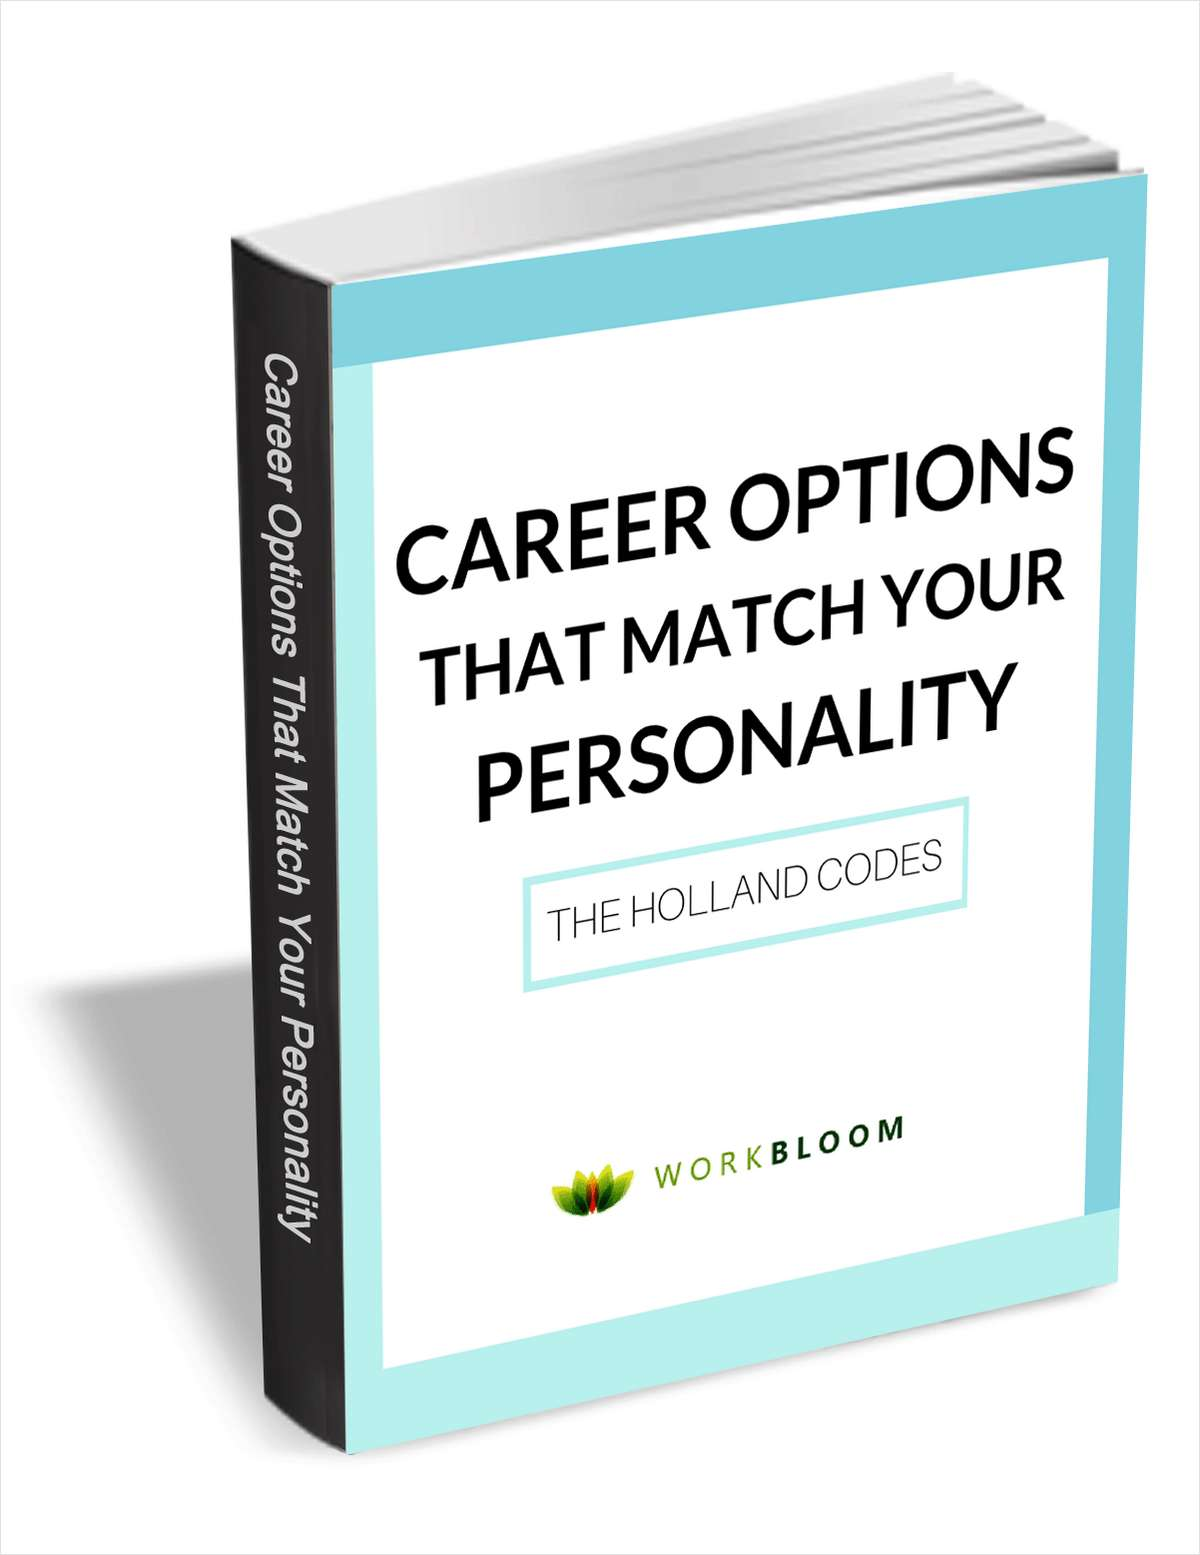 Career Options That Match Your Personality - The Holland Codes